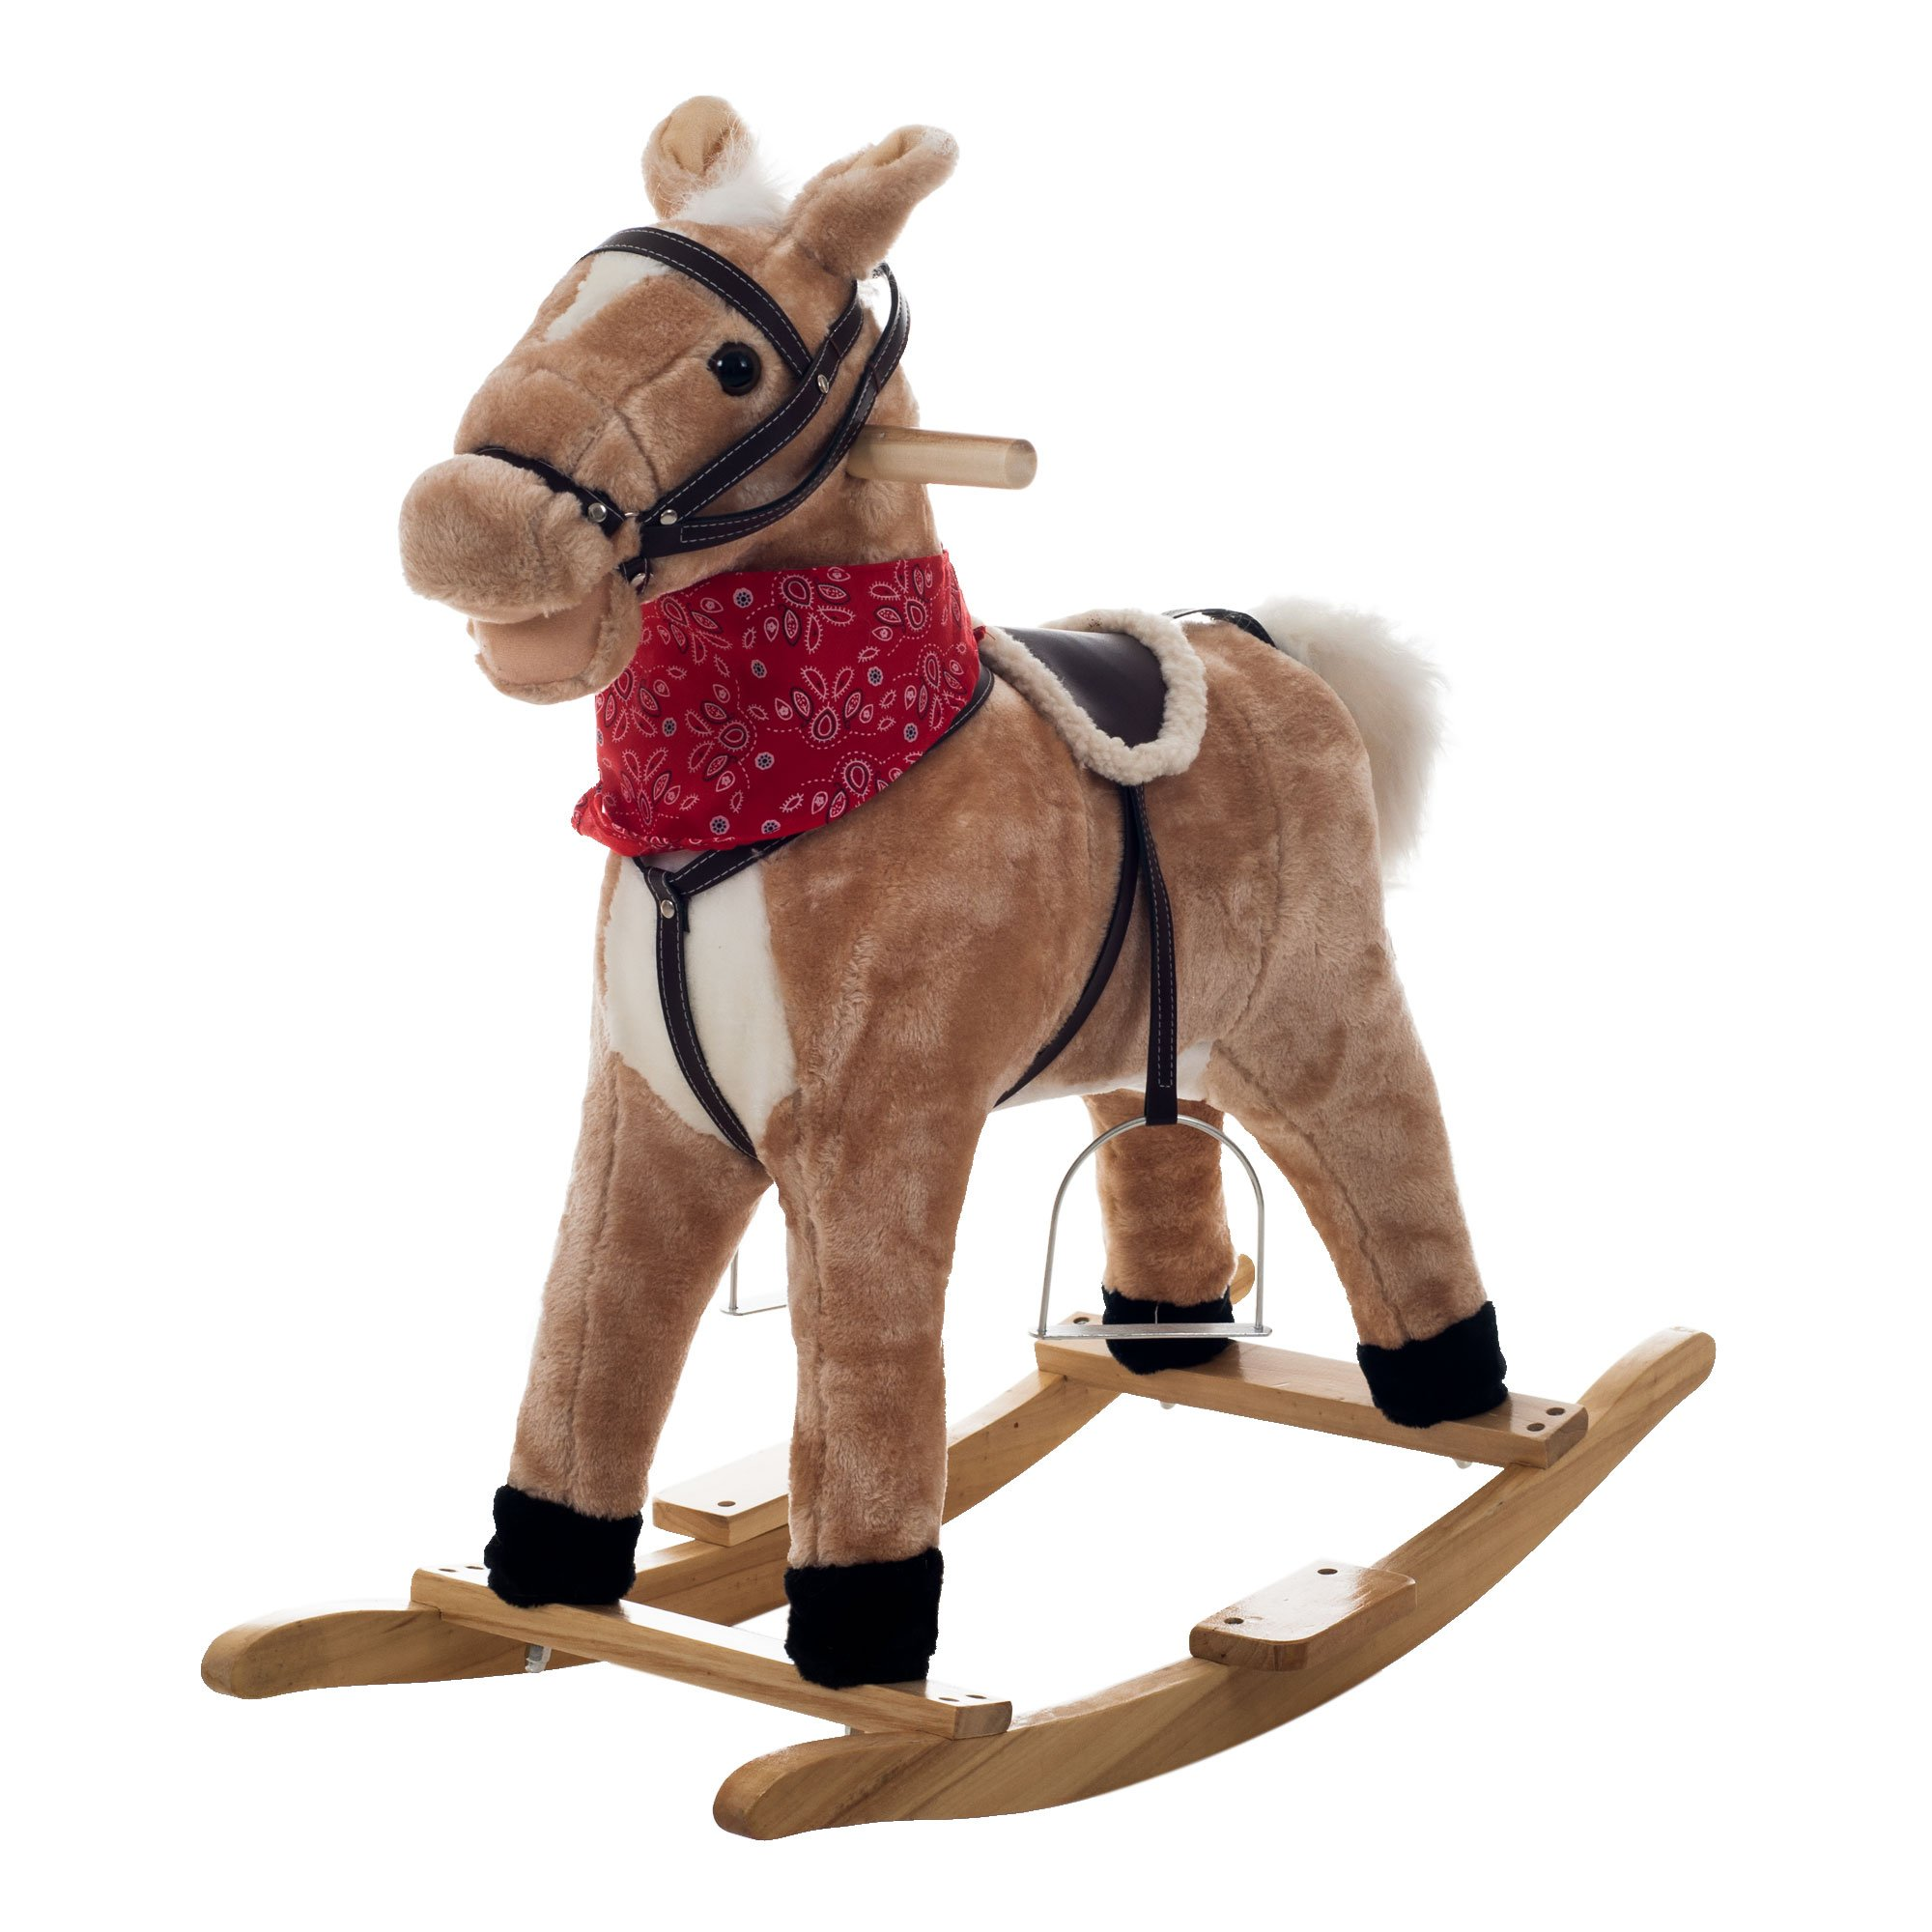 rocking horse riding Rocking horse academy offers the finest in child care, day care, preschool, infant care, and after school programs in kyle texas.